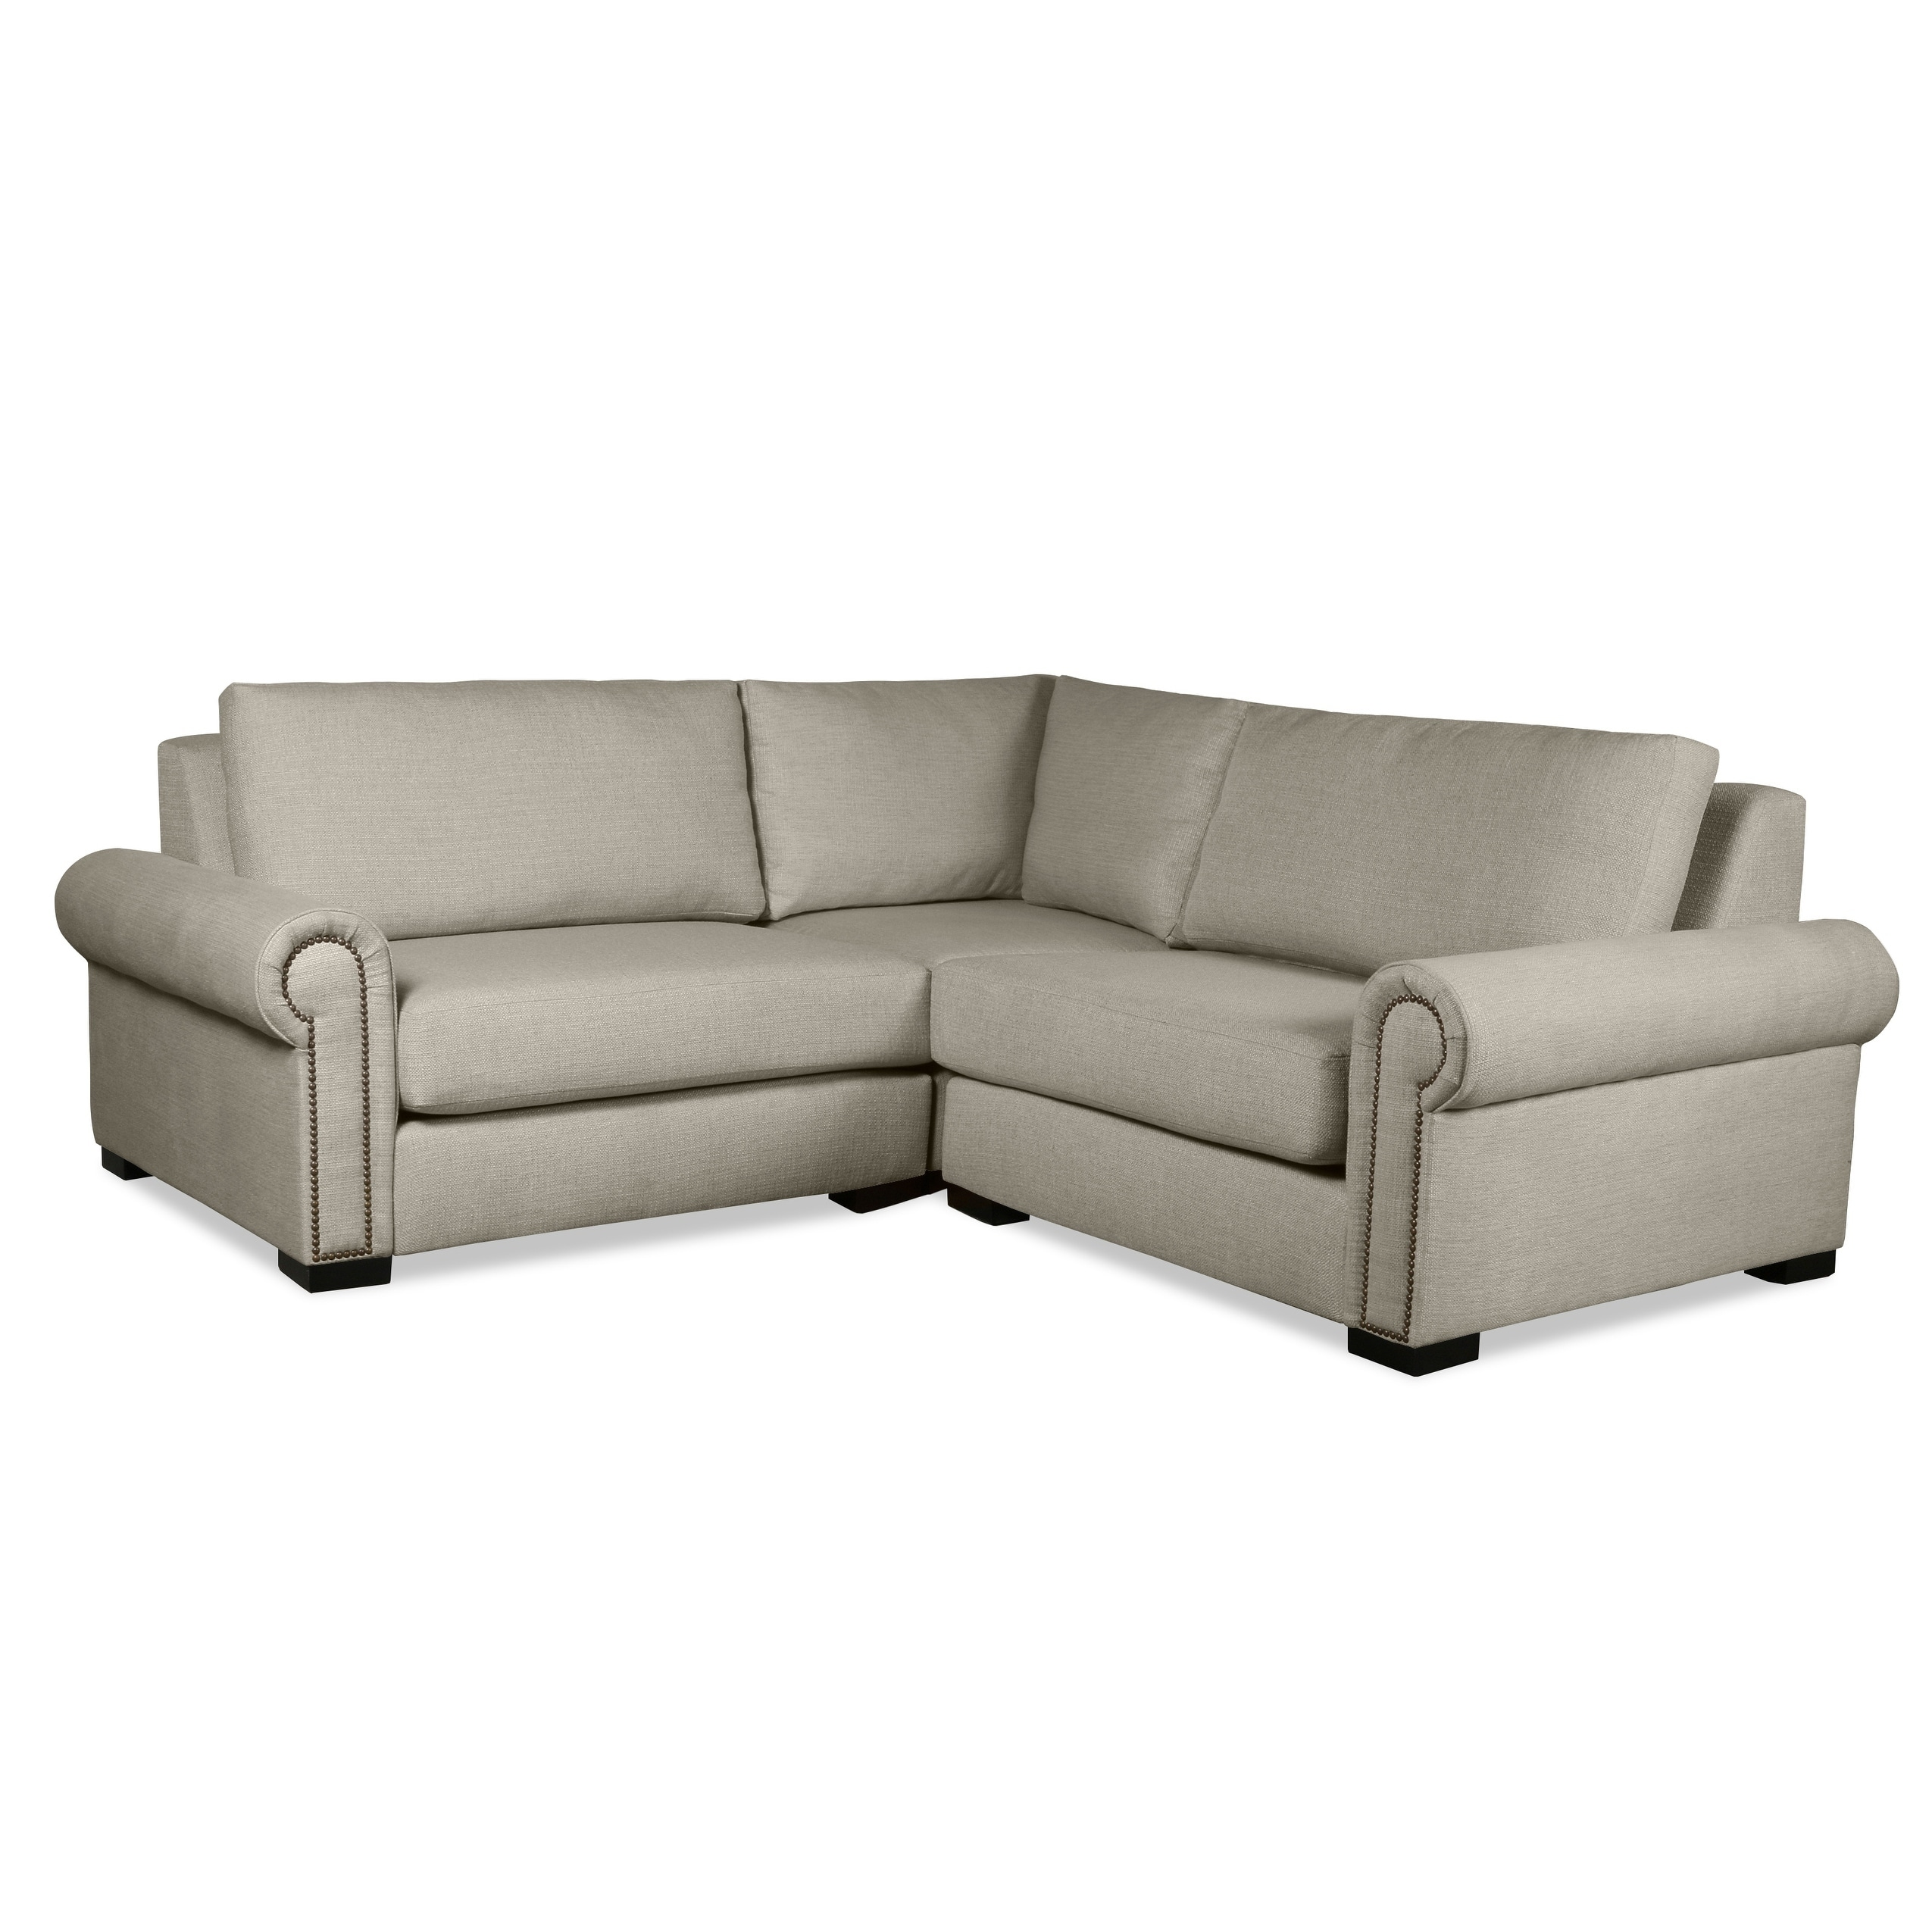 Shop Chelsea Modular Sectional Right And Left Arms L Shape Mini